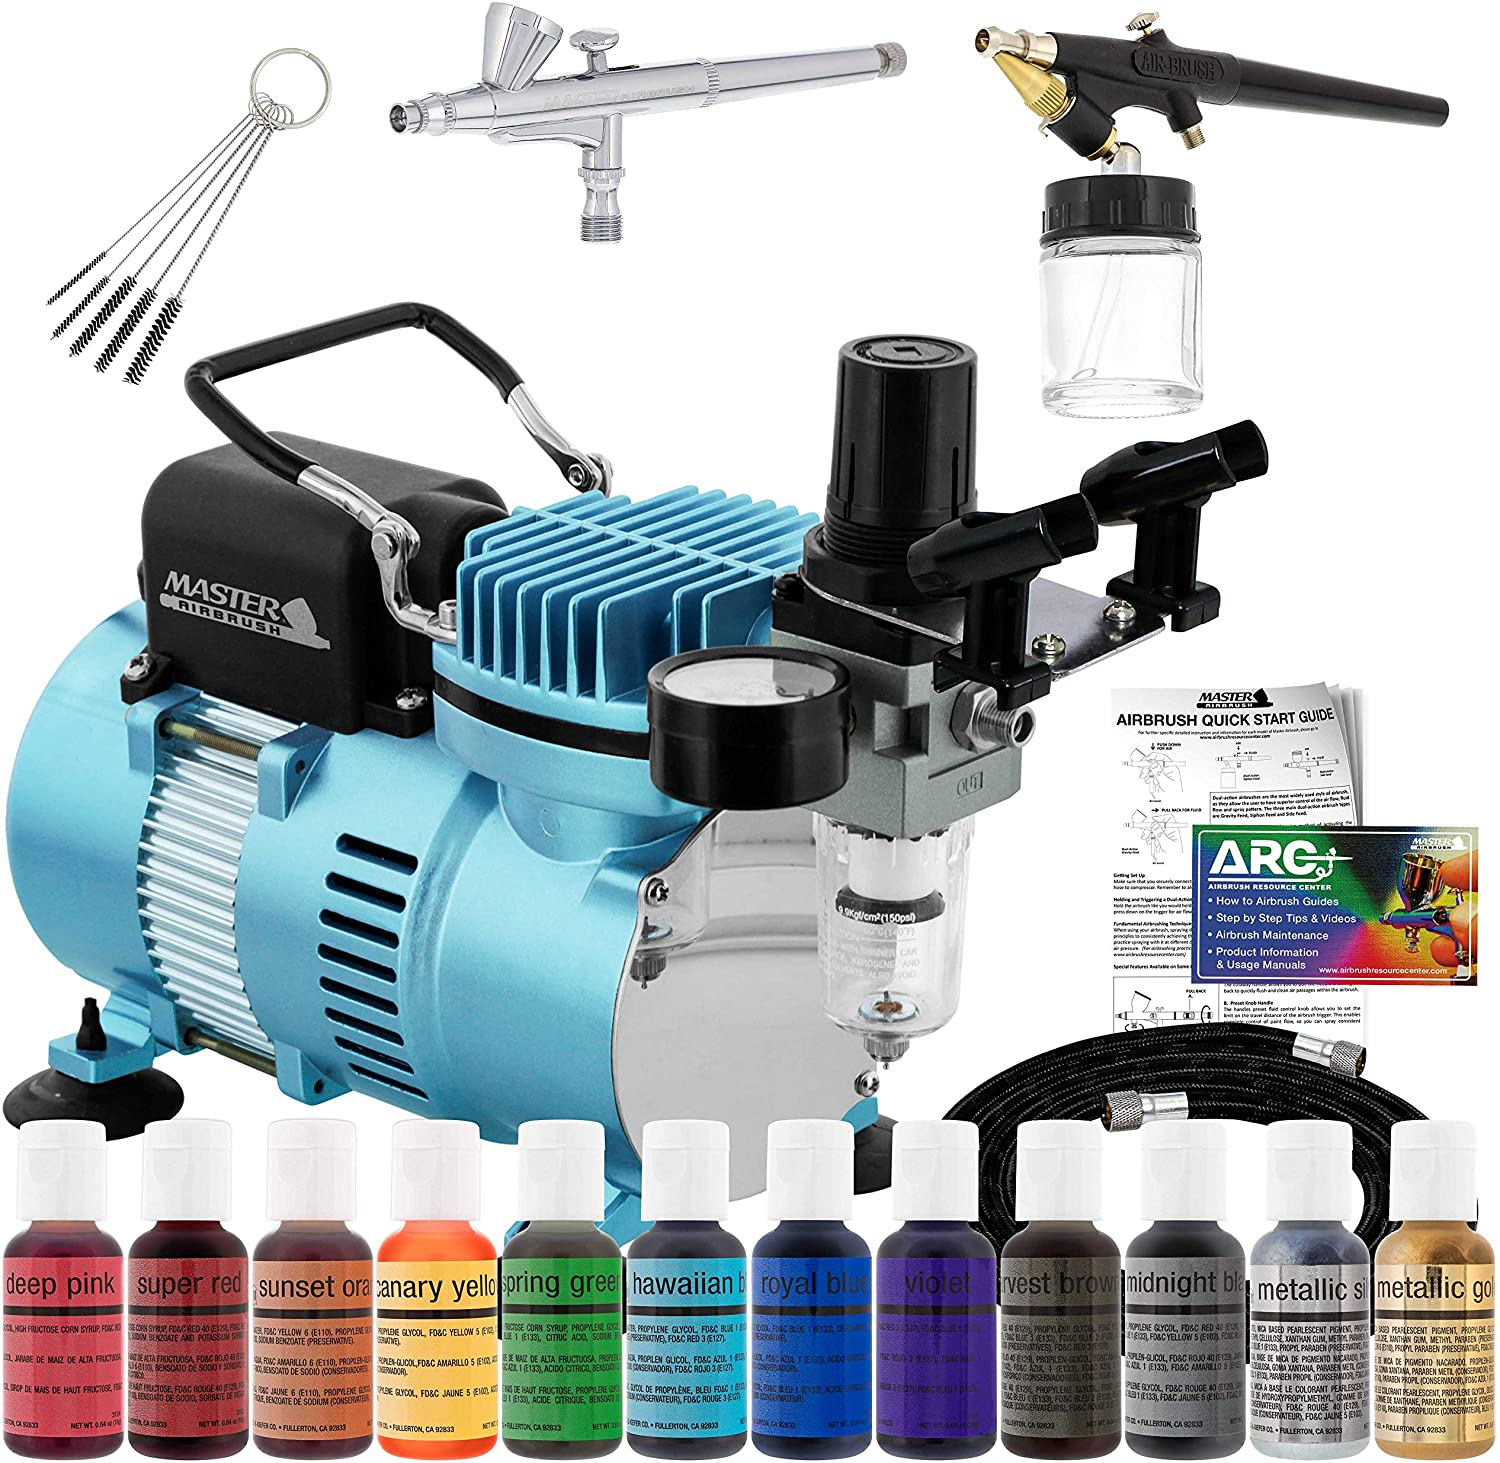 Master Airbrush Cake Decorating Airbrushing System Kit with 2 Airbrushes, Gravity and Siphon, 12 Color Chefmaster Food Coloring Set, Pro Cool Runner II Dual Fan Air Compressor - How To Guide, Cupcakes: Home & Kitchen